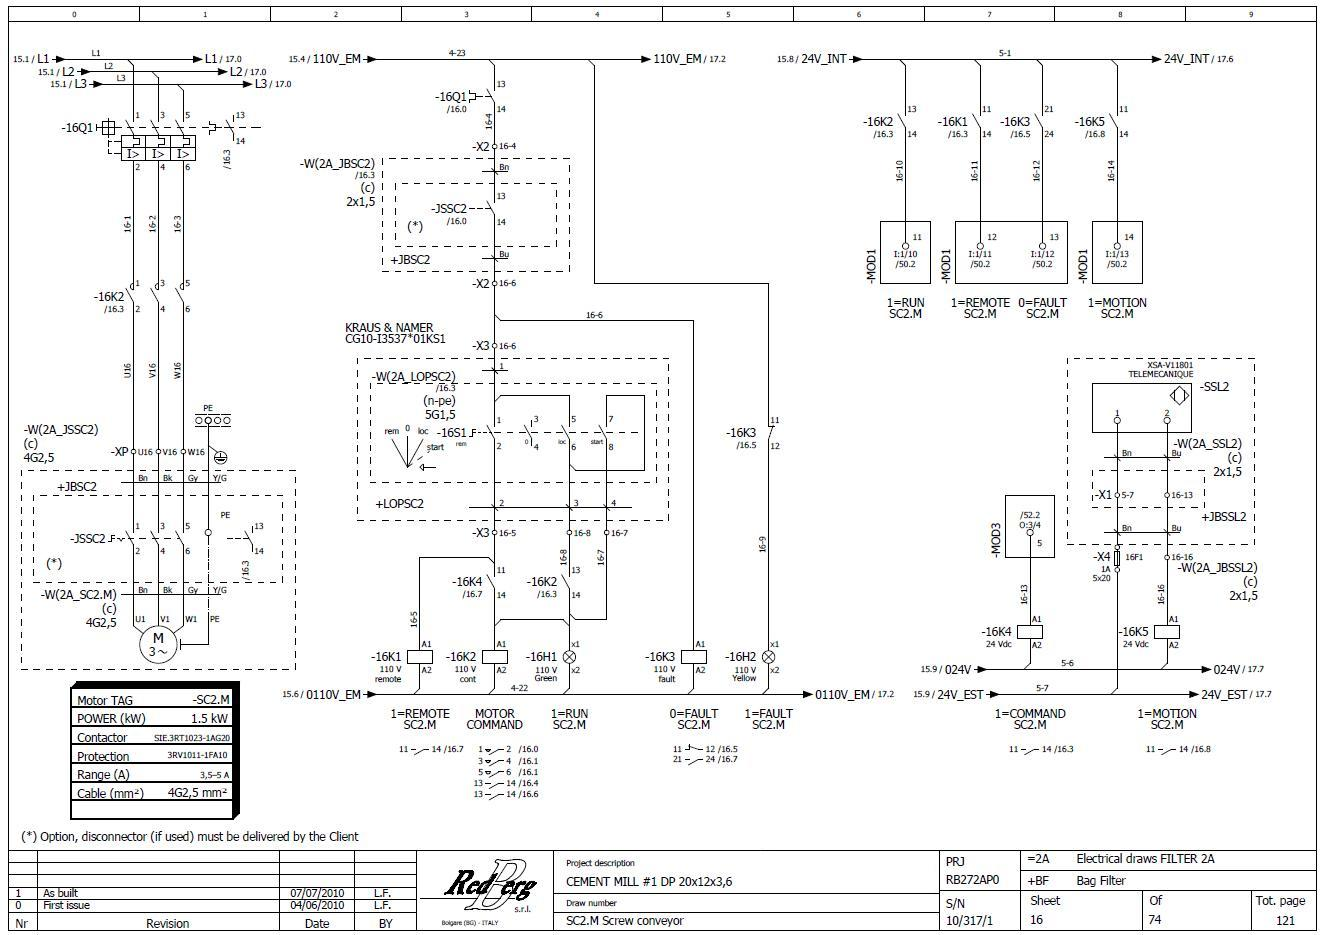 Schema electrical p&id drawings the wiring diagram readingrat net electrical engineering wiring diagrams at creativeand.co